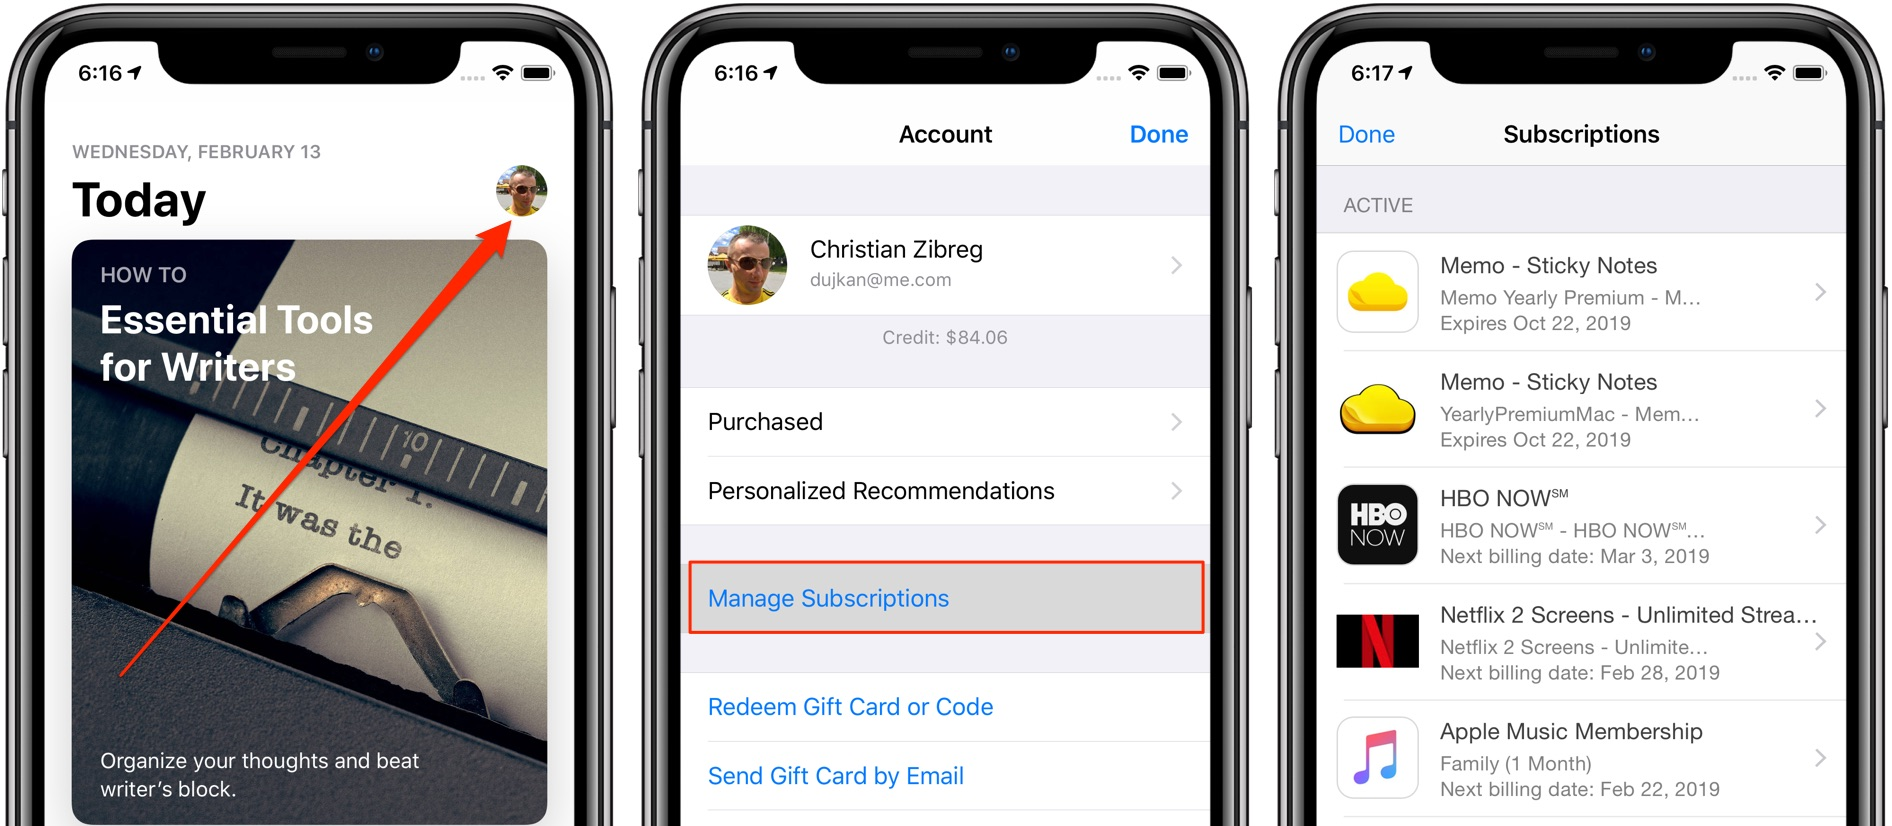 The iOS 12 1 4 update makes it easier to manage app